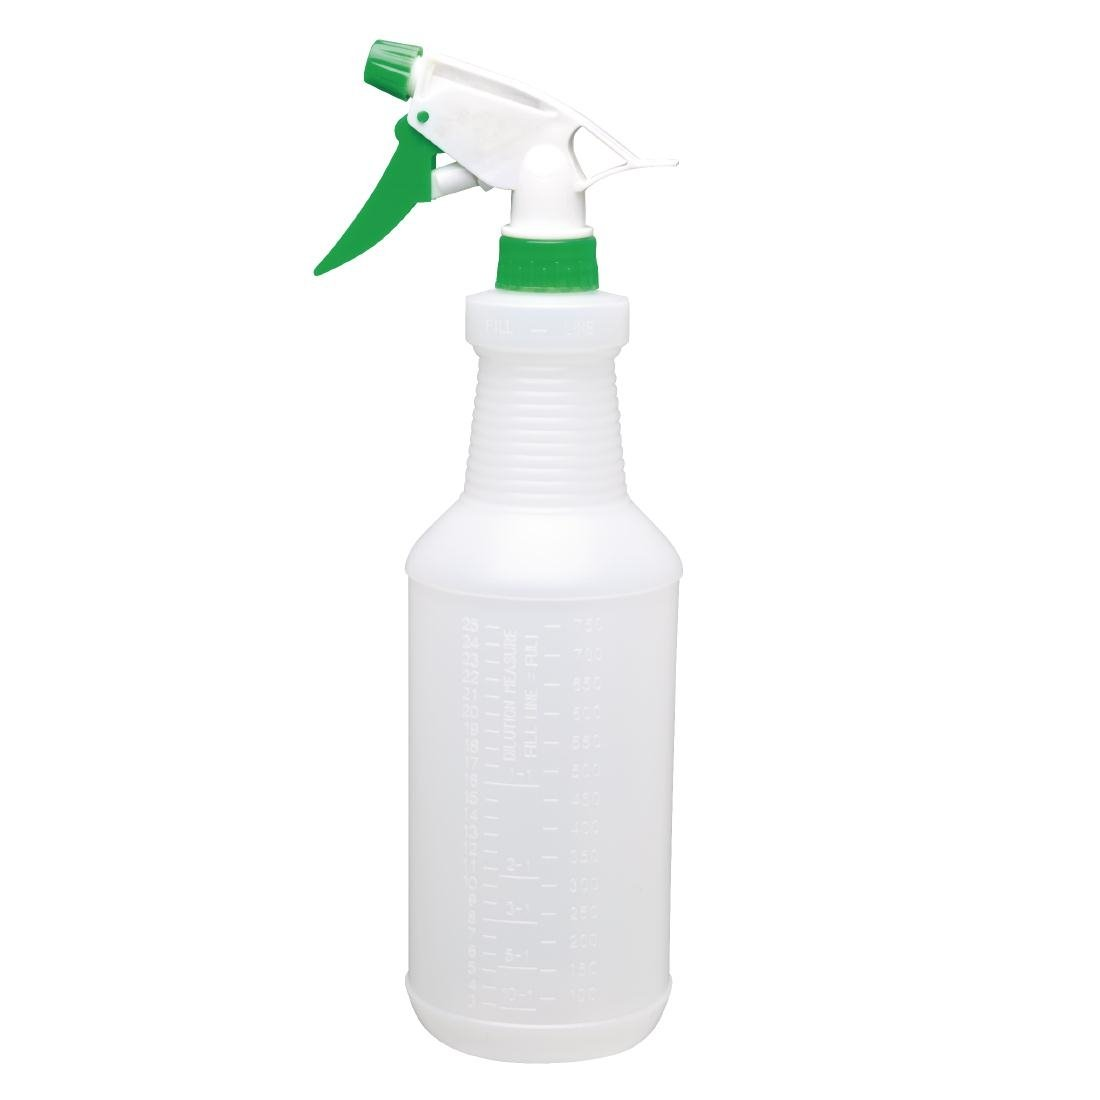 Jantex CD818 - Botella de plástico con pulverizador, 750 ml, color verde